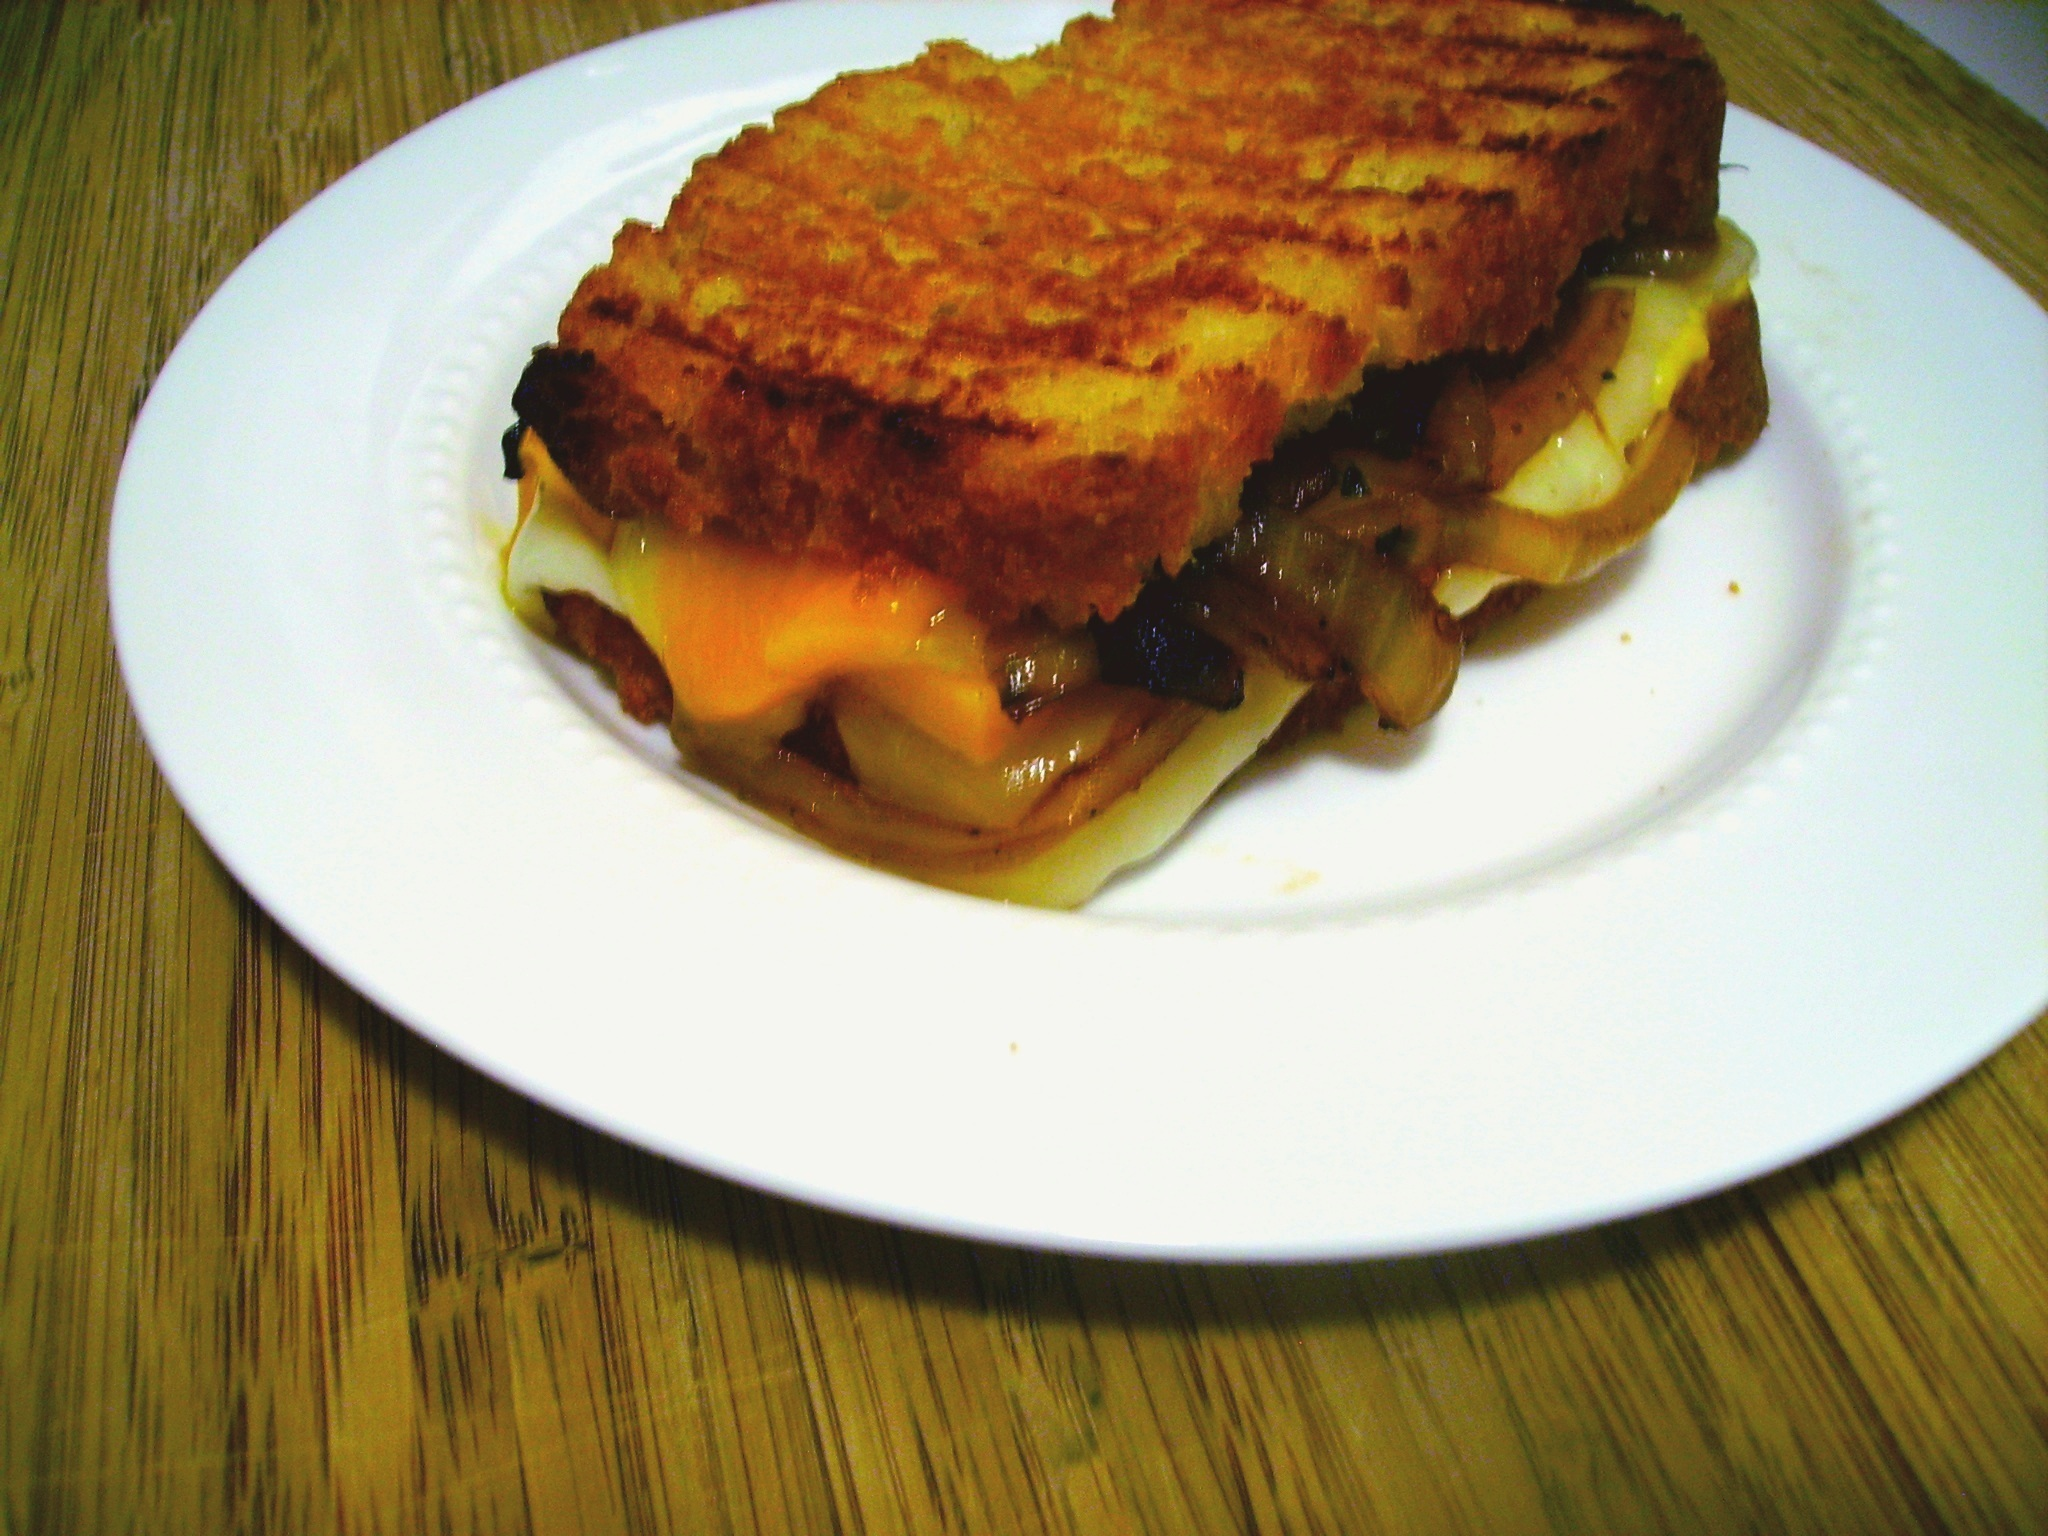 ... for grilled cheese using beer bread. Holy moly, what could be better